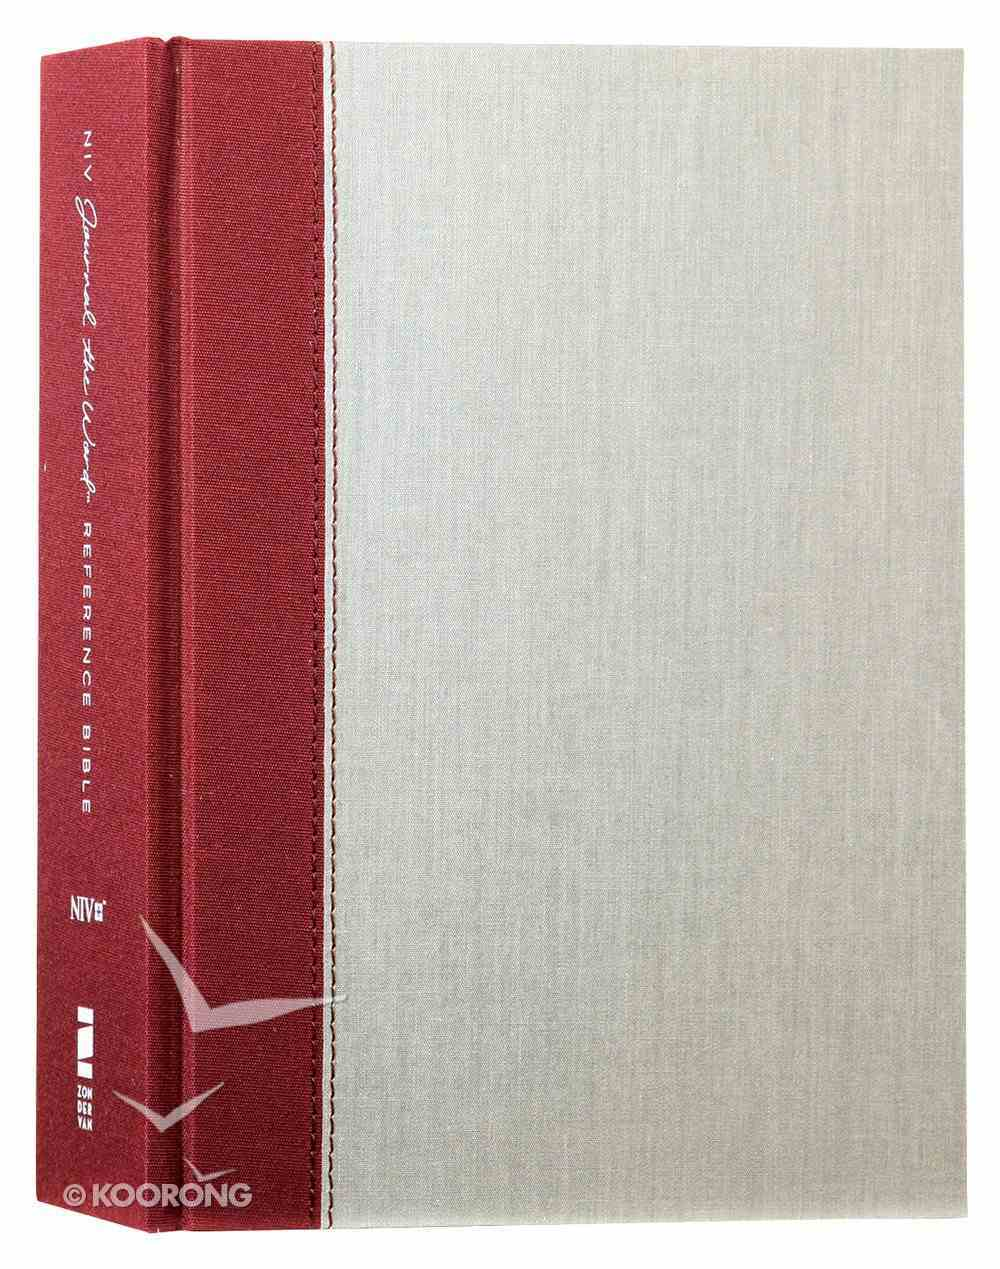 NIV Journal the Word Reference Bible Burgundy/Gray (Red Letter Edition) Hardback